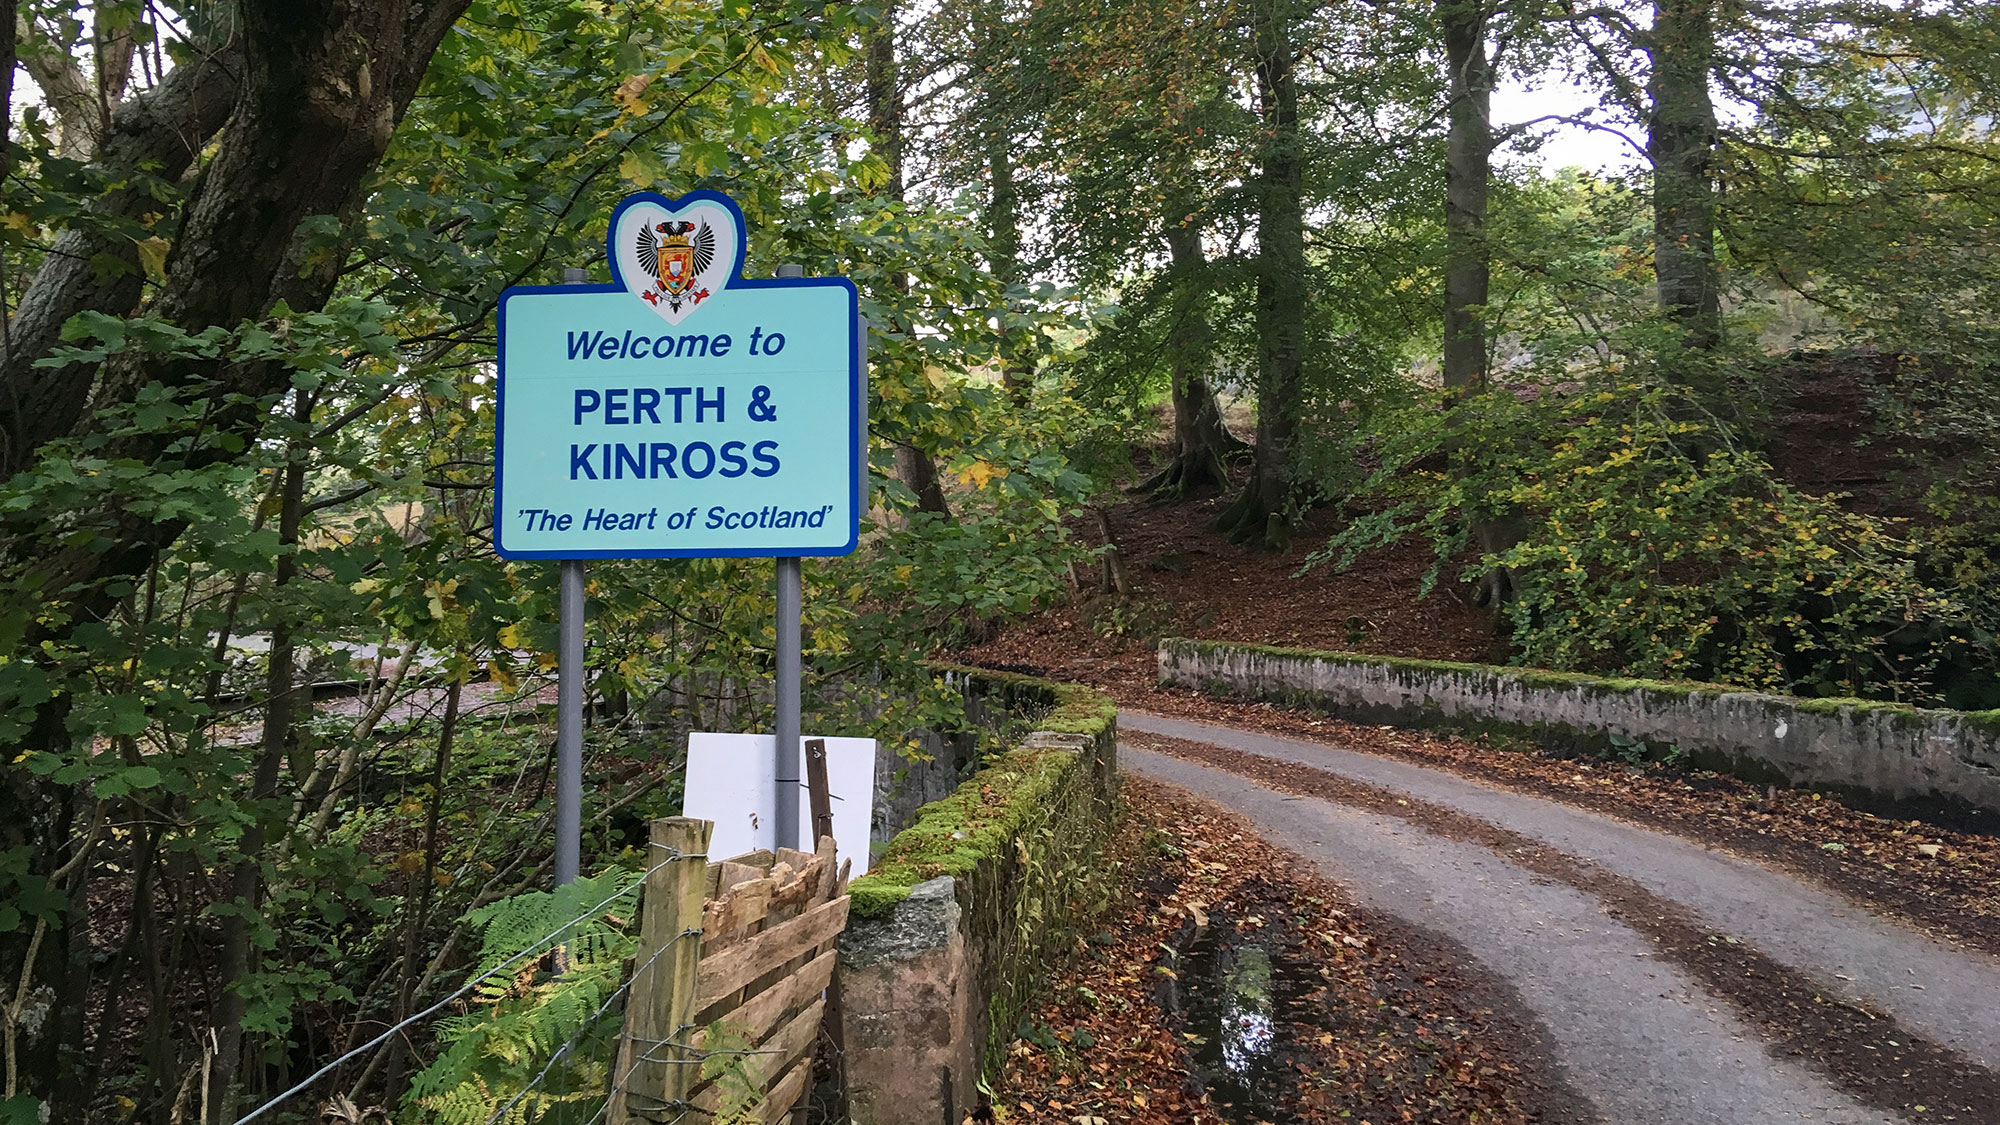 Welcome to Perth & Kinross